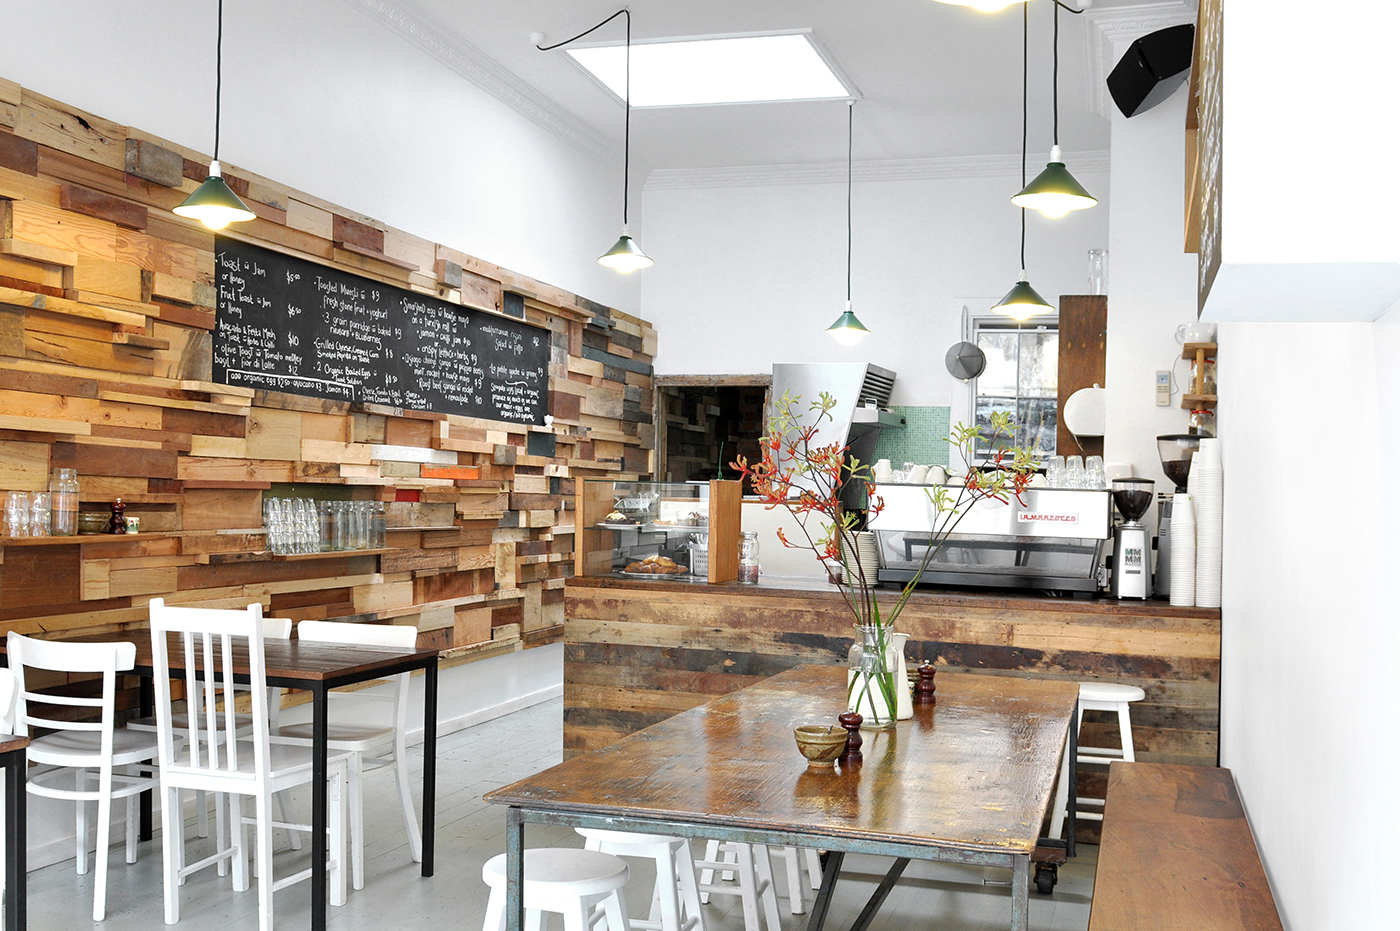 Slowpoke cafe sasufinet for Brilliant cafe interior design ideas